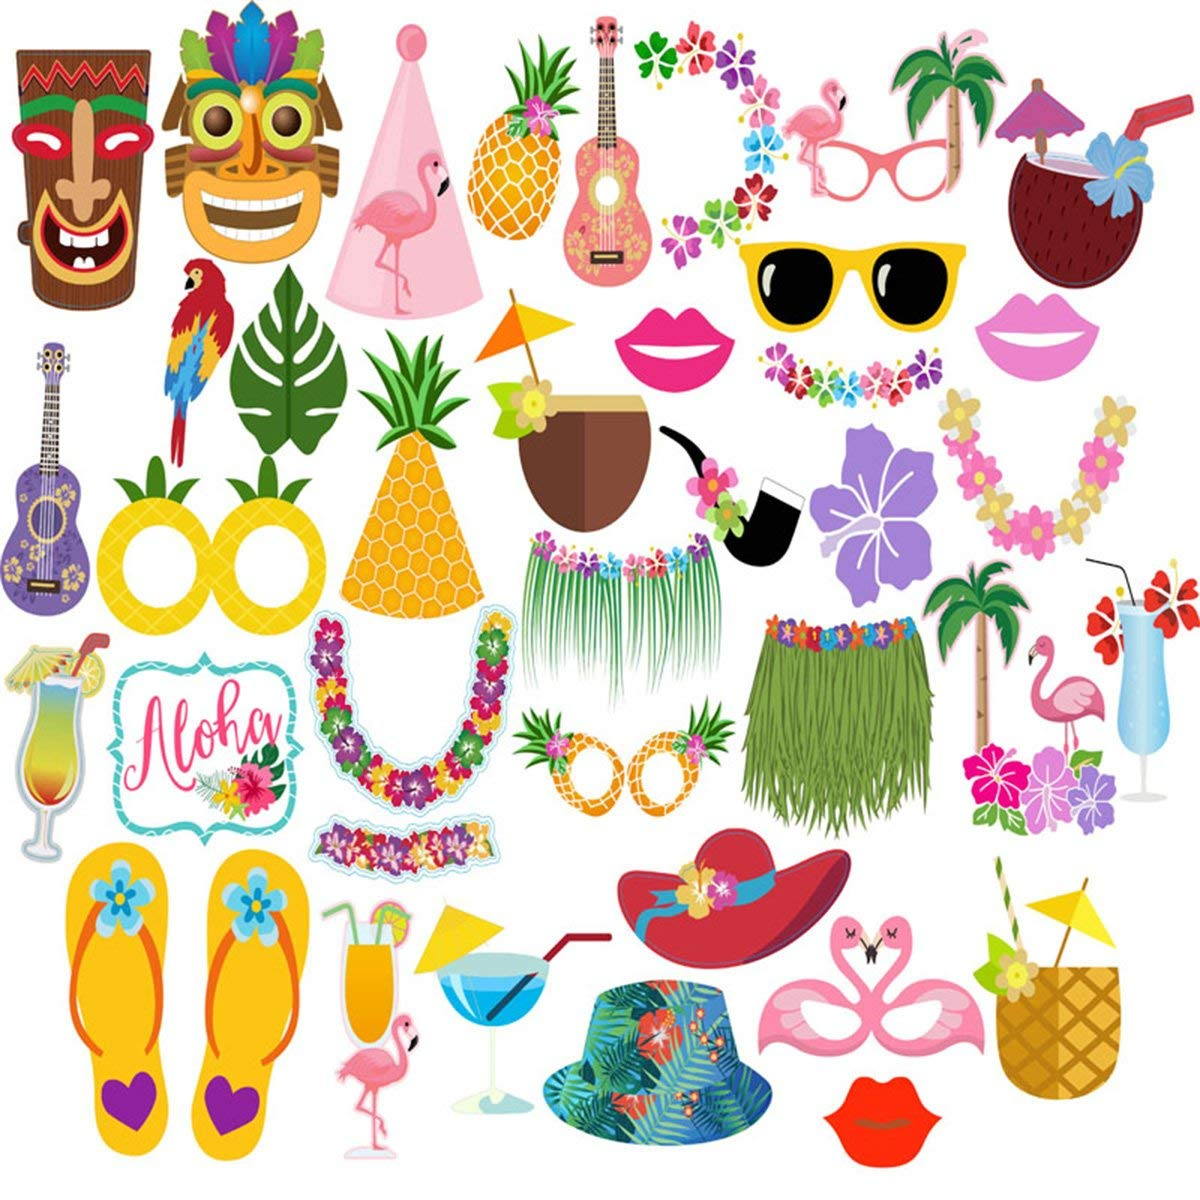 JeVenis 2 in 1 Luau Photo Booth Props Frame Party Supplies Hawaiian Tropical Tiki Birthday Baby Shower Bridal Shower Wedding Decorations